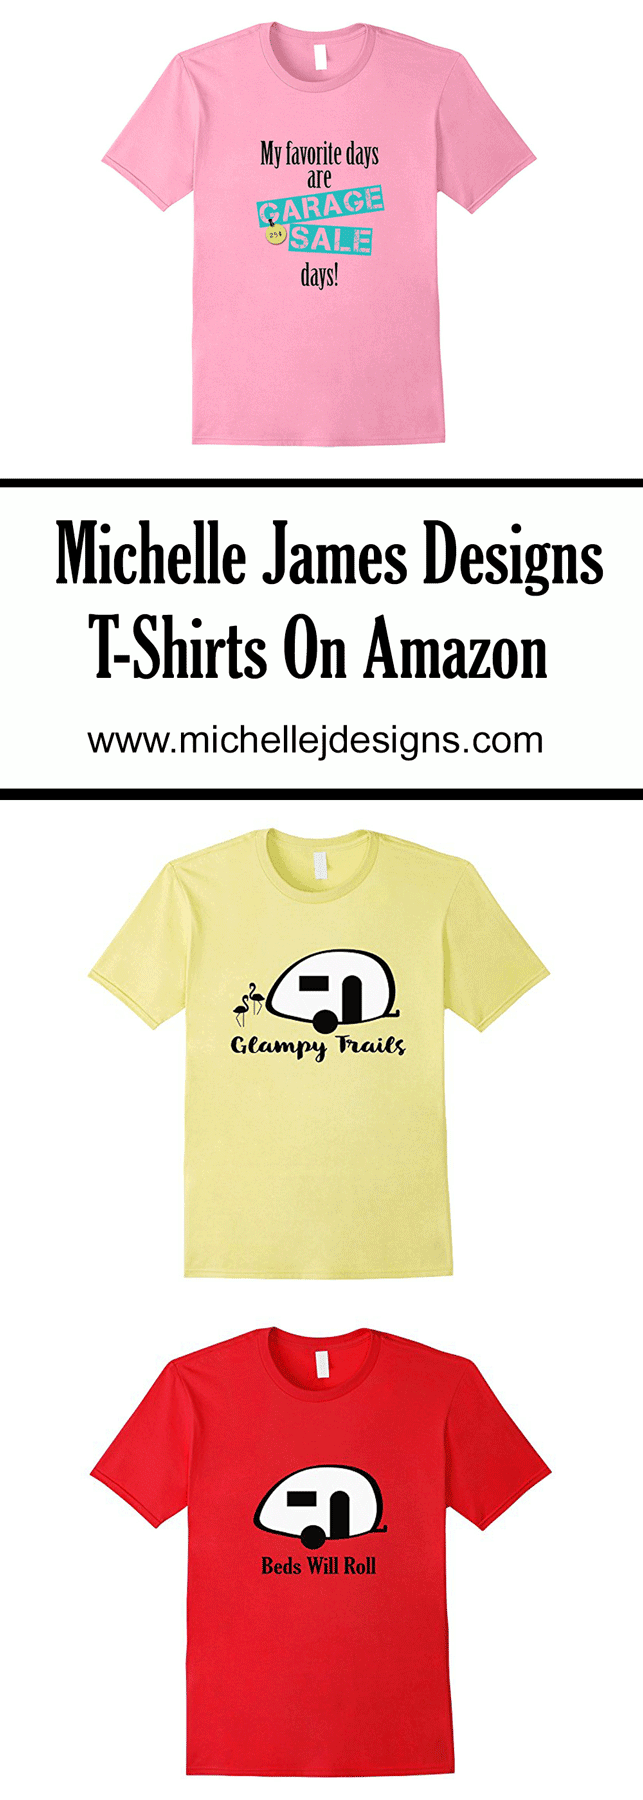 I am so excited to be selling my t-shirts on Amazon. Check out my camping t-shirts and garage sale days t-shirts all ready to go! www.michellejdesigns.com